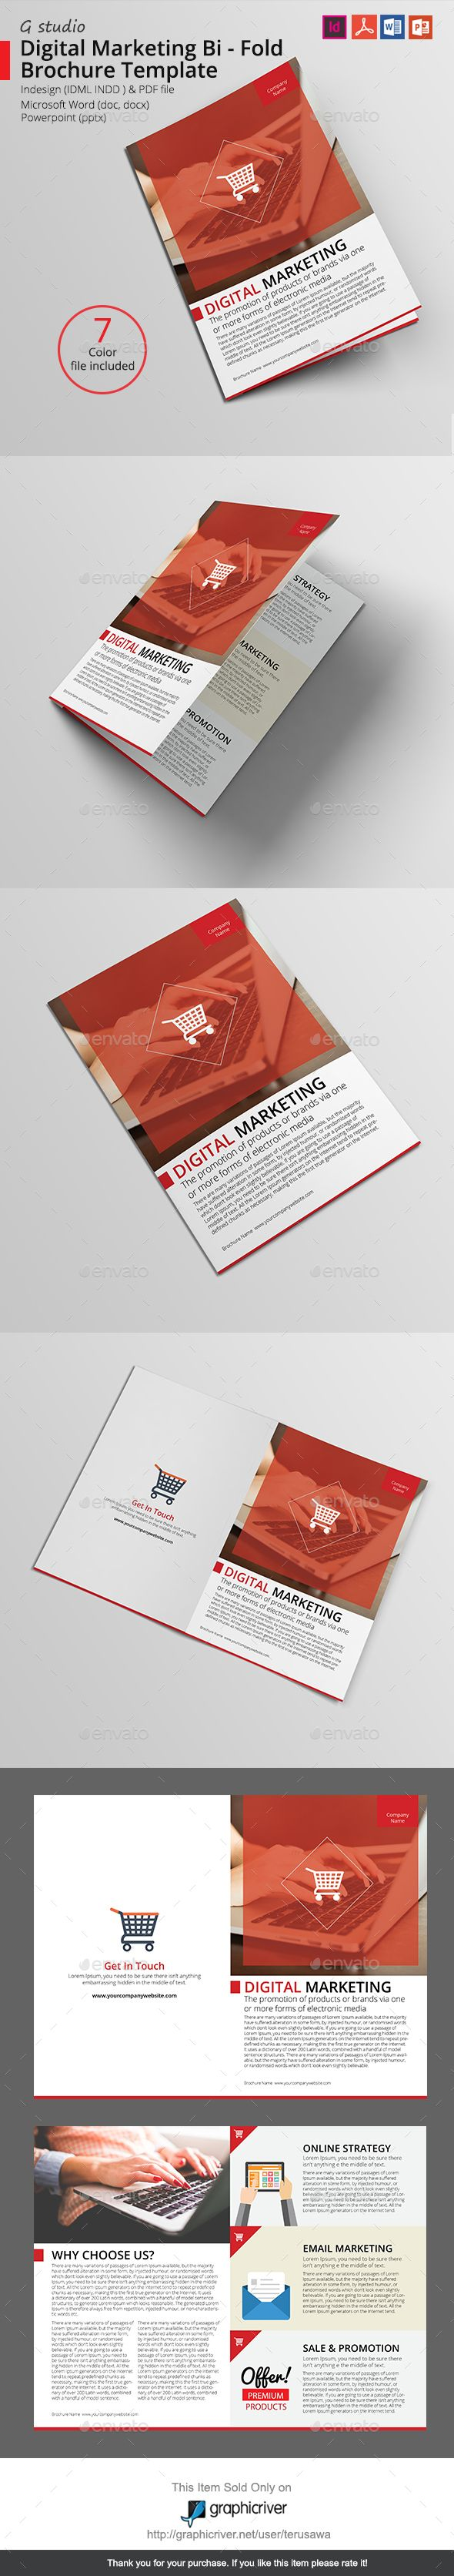 Best Bi Fold Brochure Ideas On Pinterest Tri Fold Brochure - Bi fold brochure template indesign